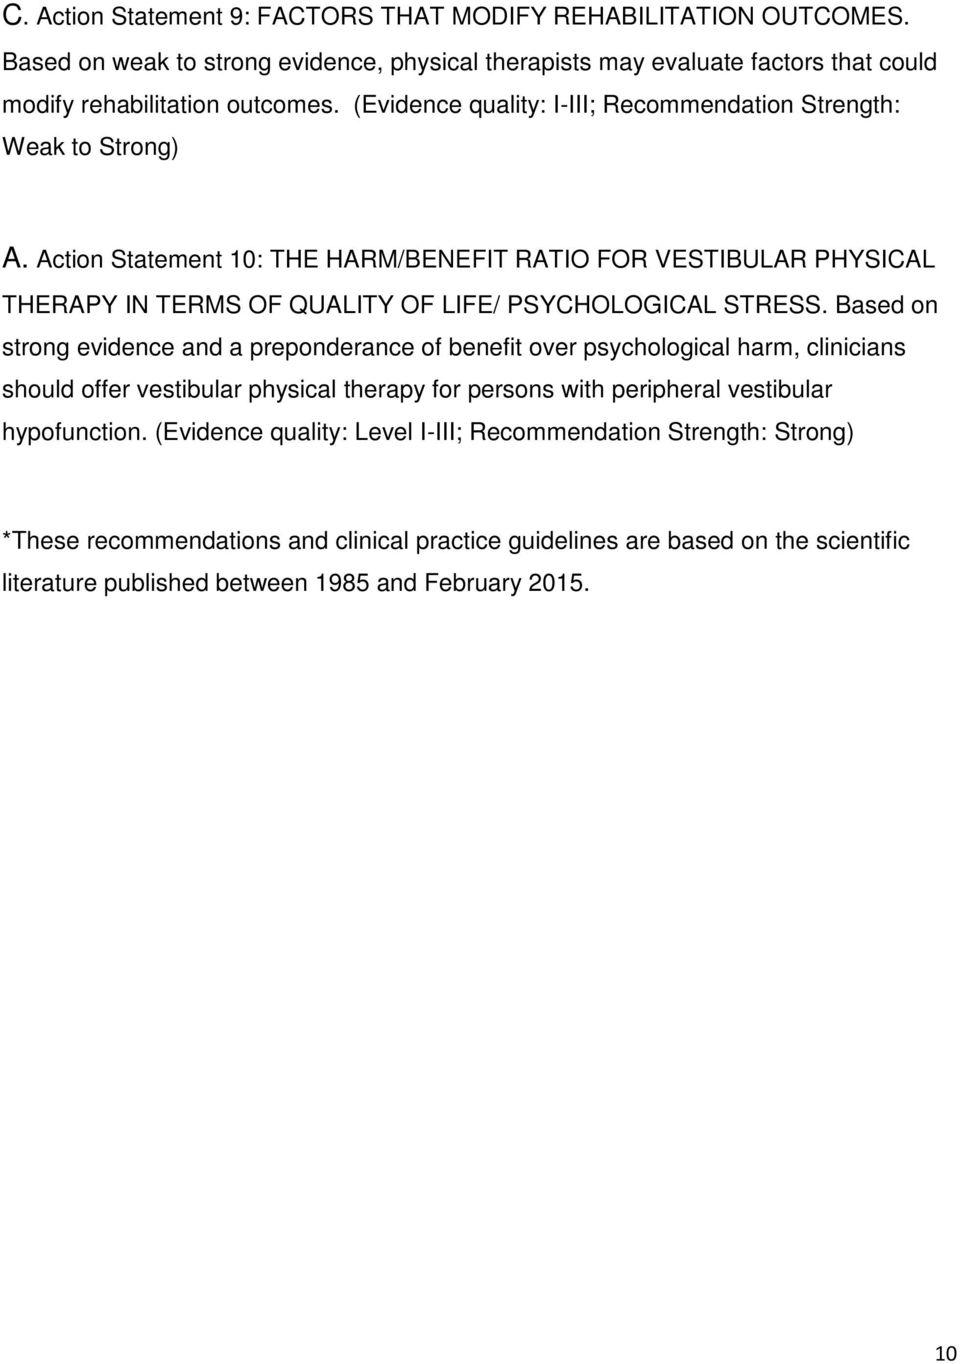 Action Statement 10: THE HARM/BENEFIT RATIO FOR VESTIBULAR PHYSICAL THERAPY IN TERMS OF QUALITY OF LIFE/ PSYCHOLOGICAL STRESS.